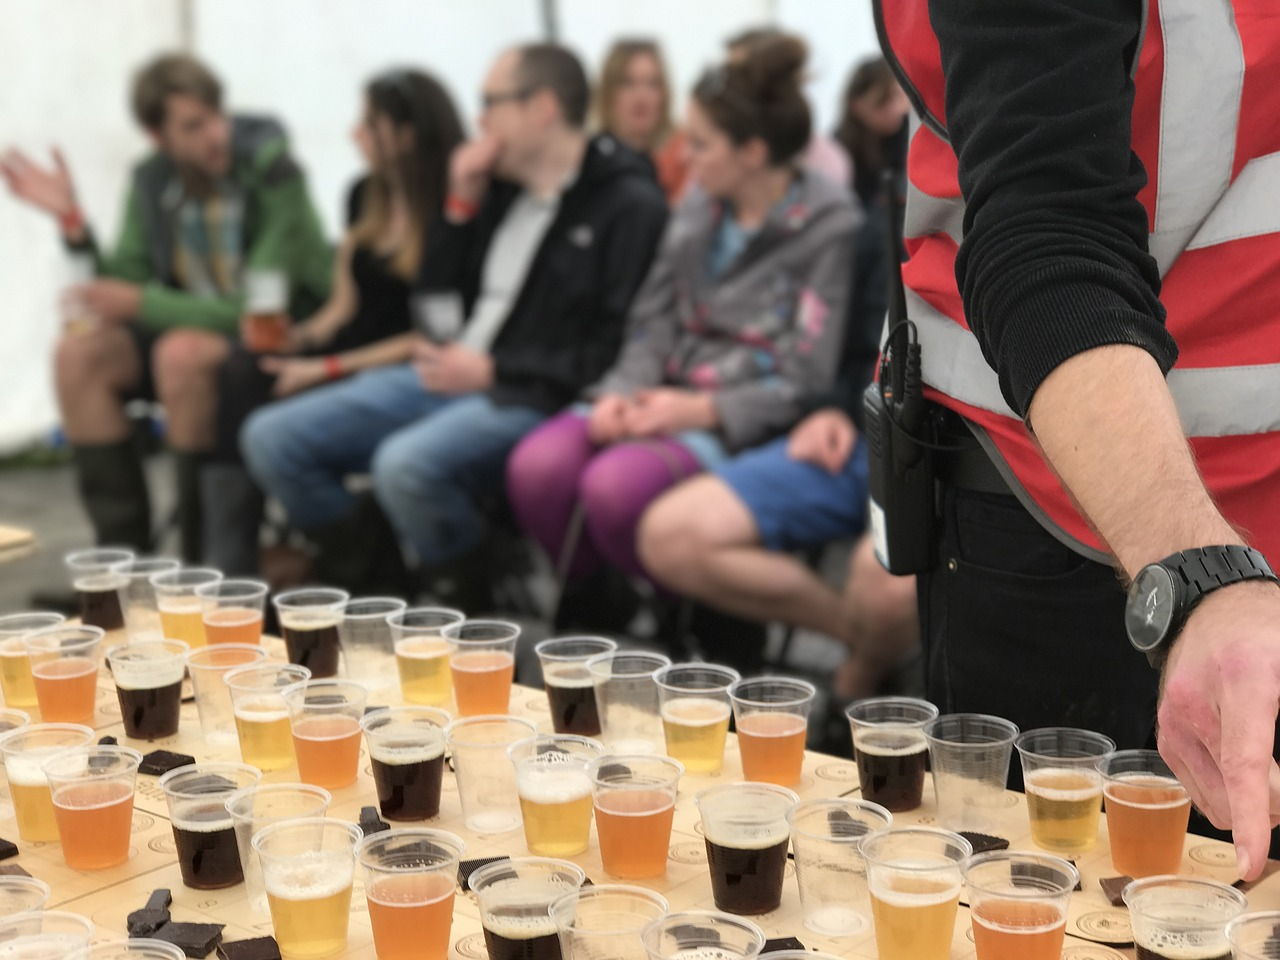 Statistics from the 2019 Craft Brewers Conference